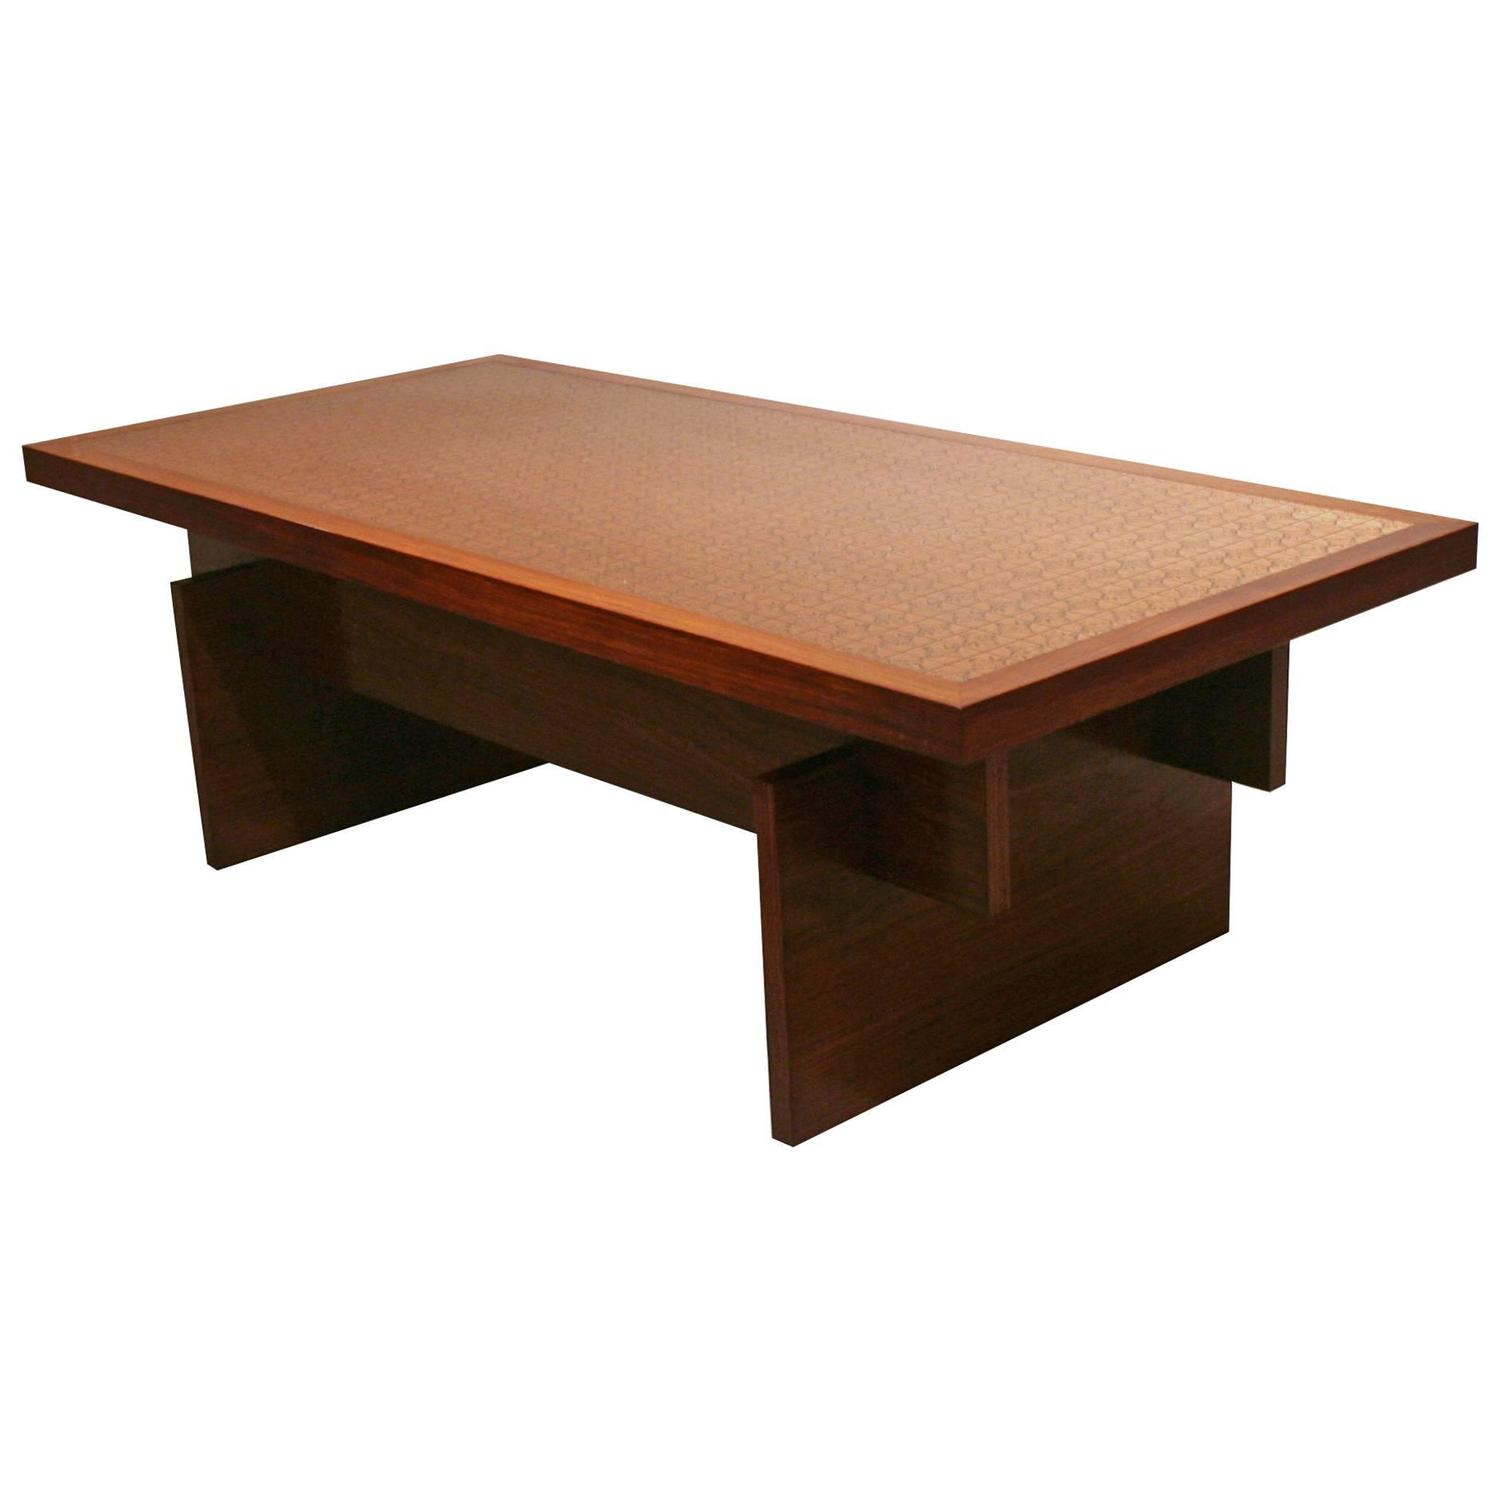 Vintage Danish Rosewood And Copper Coffee Table At 1stdibs